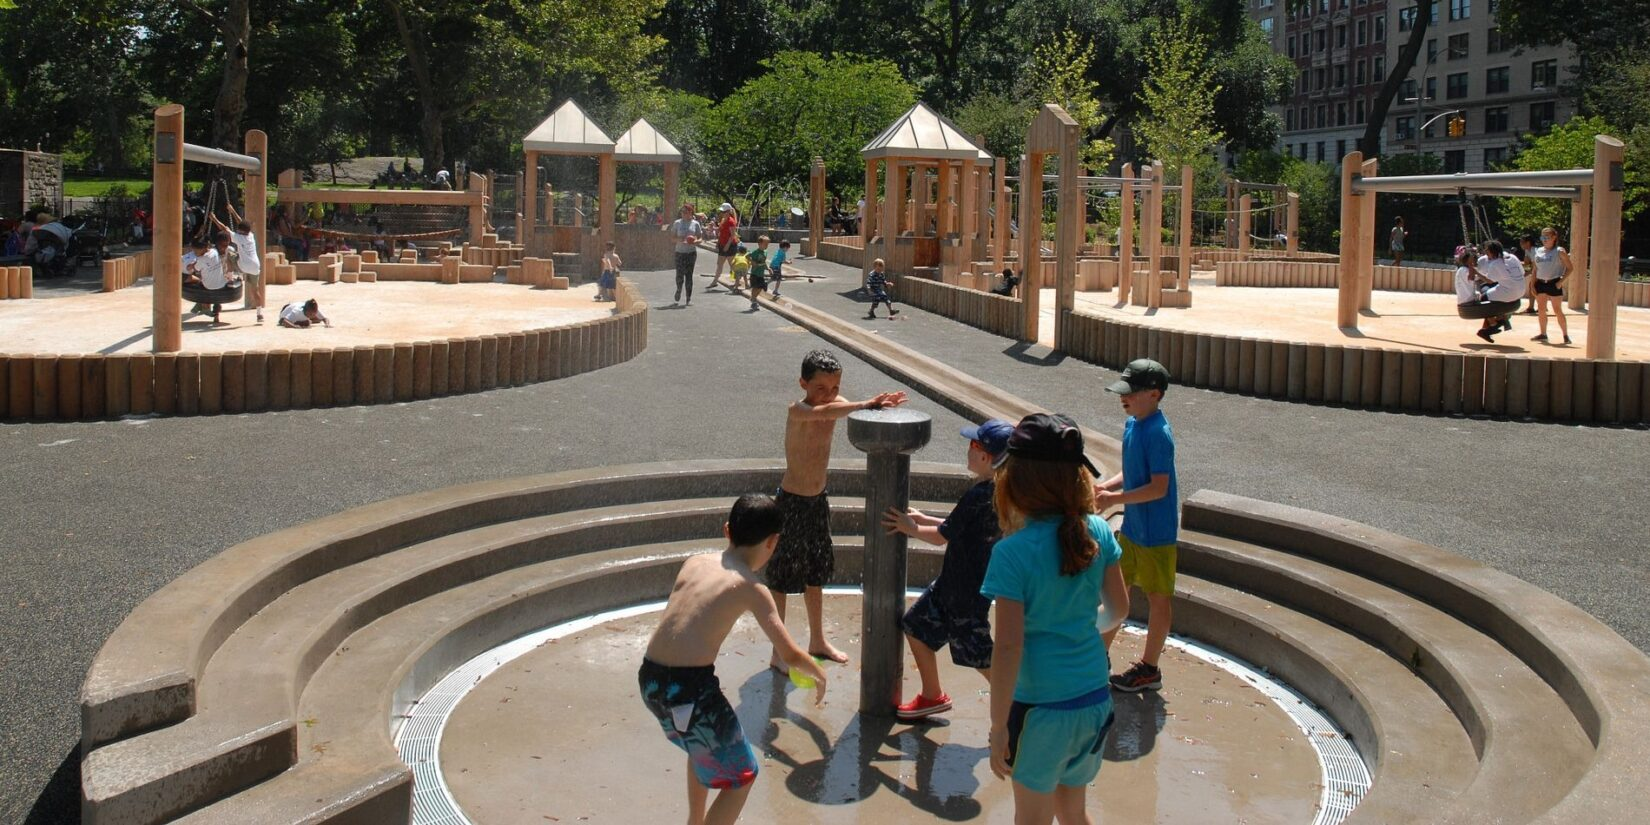 Several children surround the water feature on a cloudless summer day